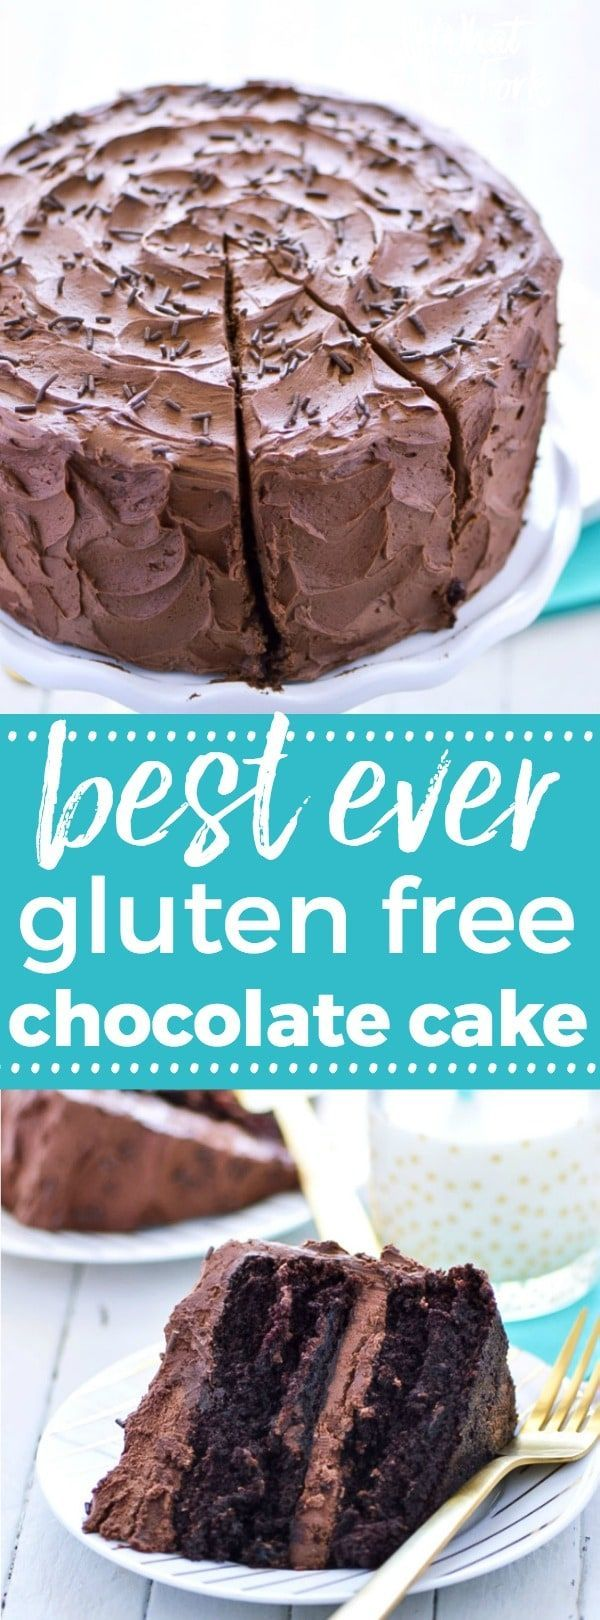 This is the BEST gluten free chocolate cake recipe out there! So moist, so rich, and so full of chocolate flavor! It's always the hit of the party! Recipe from @whattheforkblog   whattheforkfoodblog.com